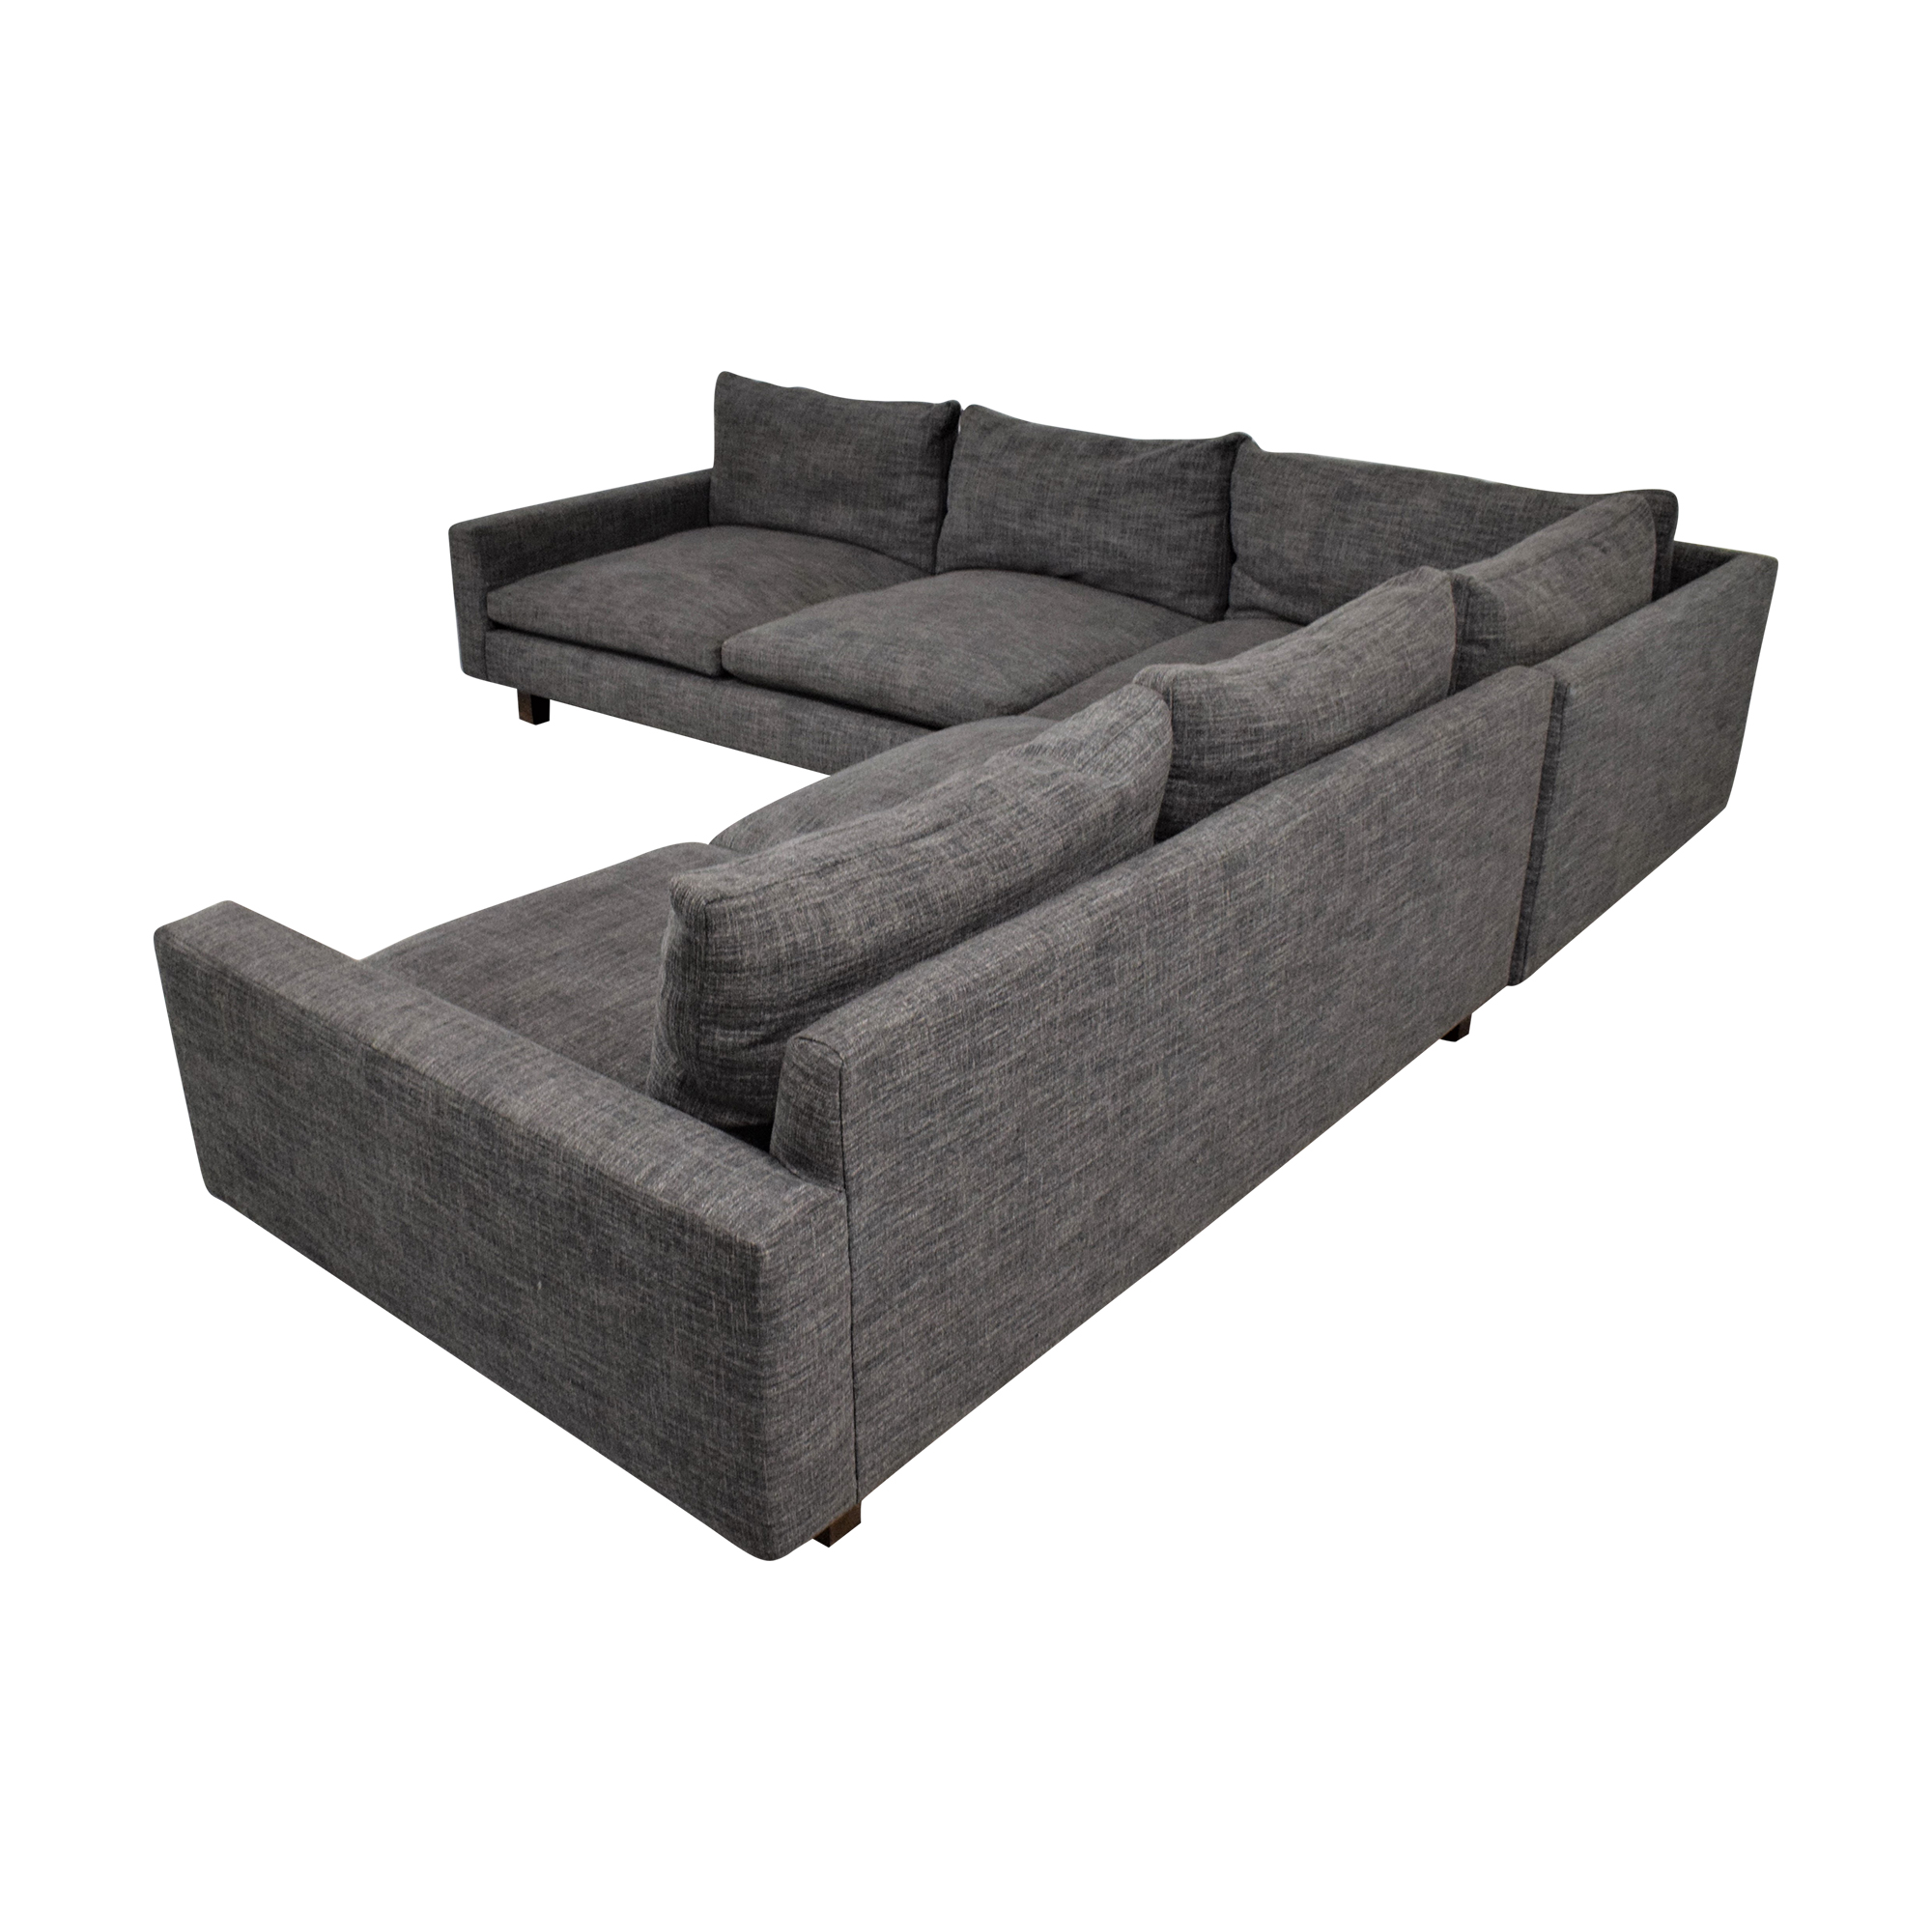 West Elm West Elm Harmony 3-Piece L-Shaped Sectional nyc